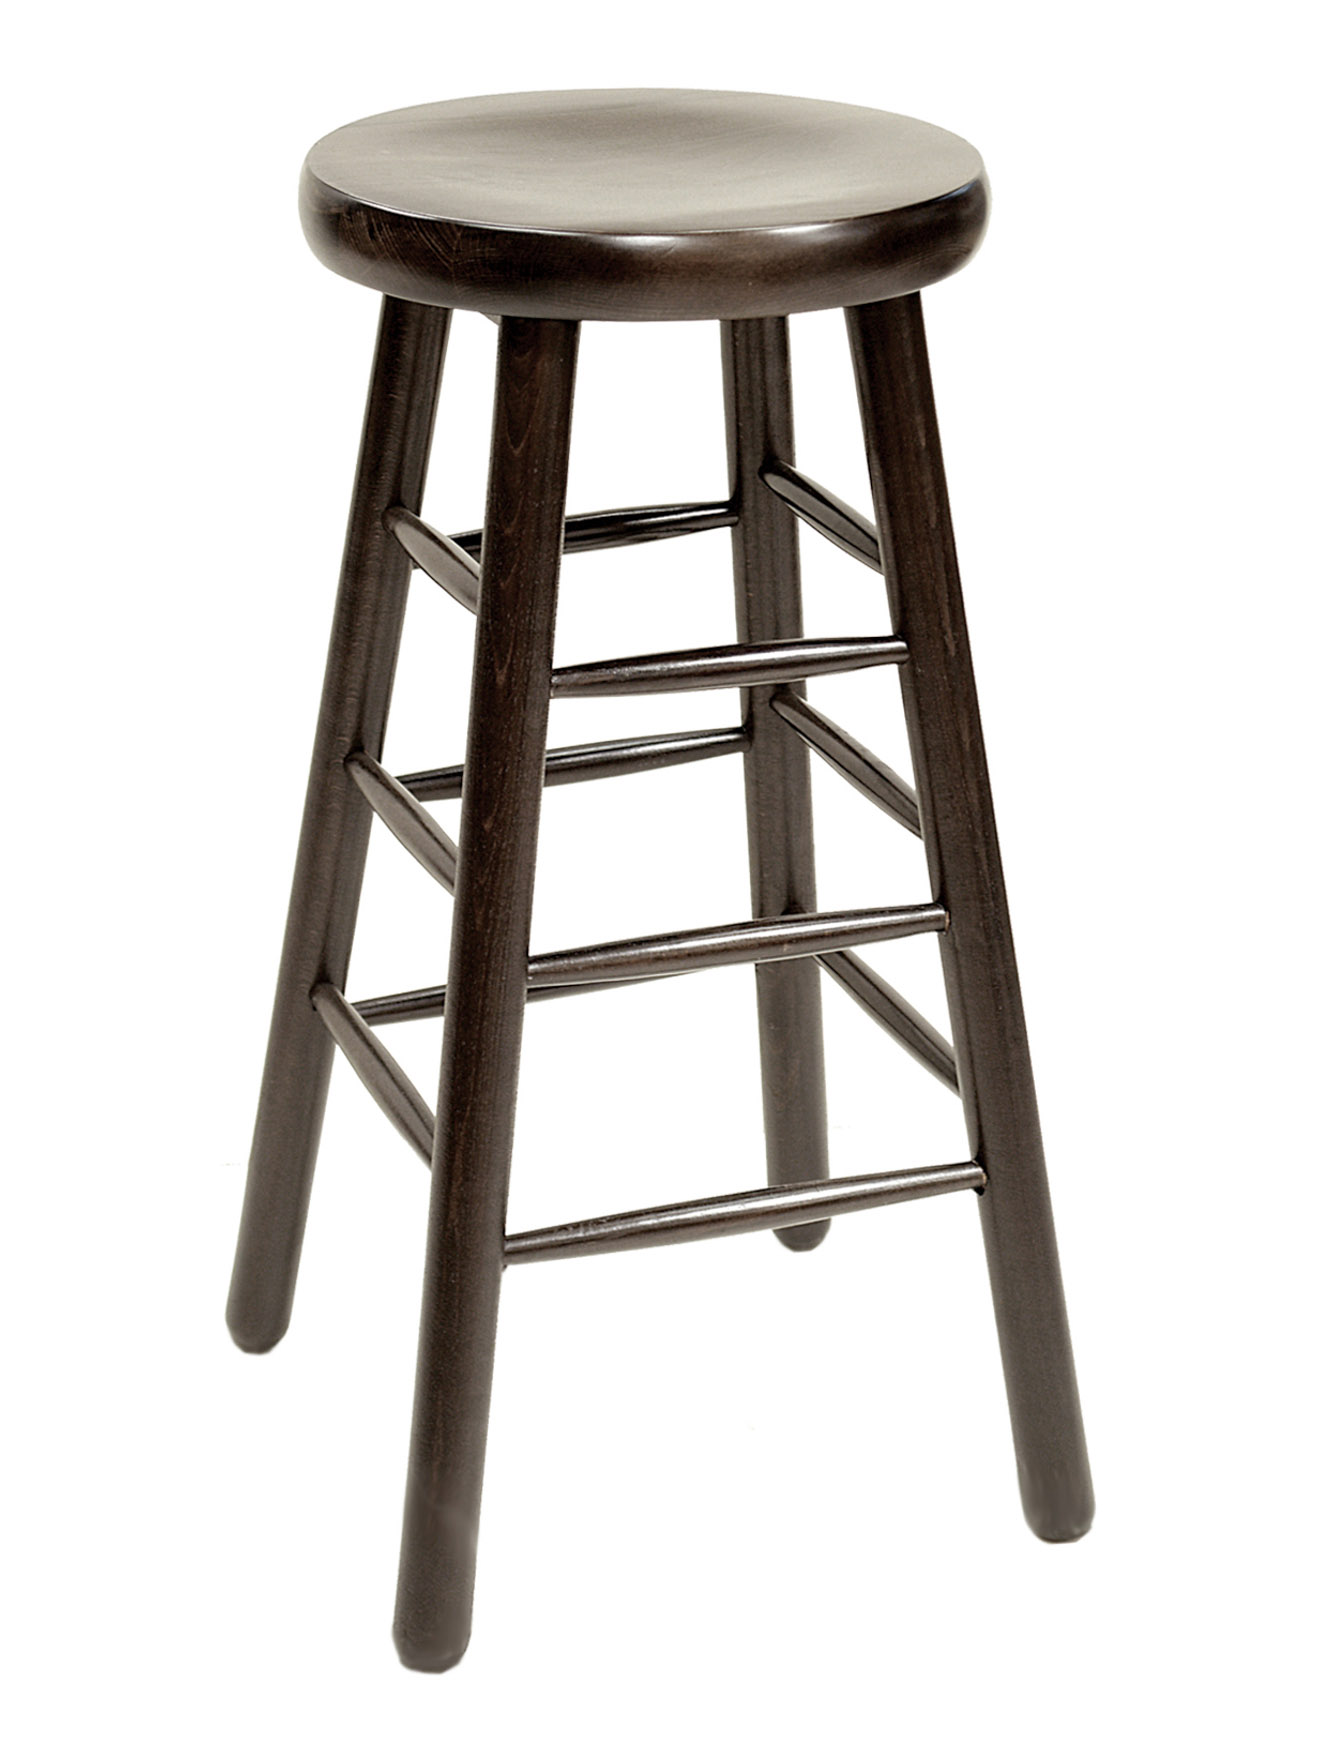 30 Inch Backless Bar Stool Sb30b Commercial Restaurant Furniture